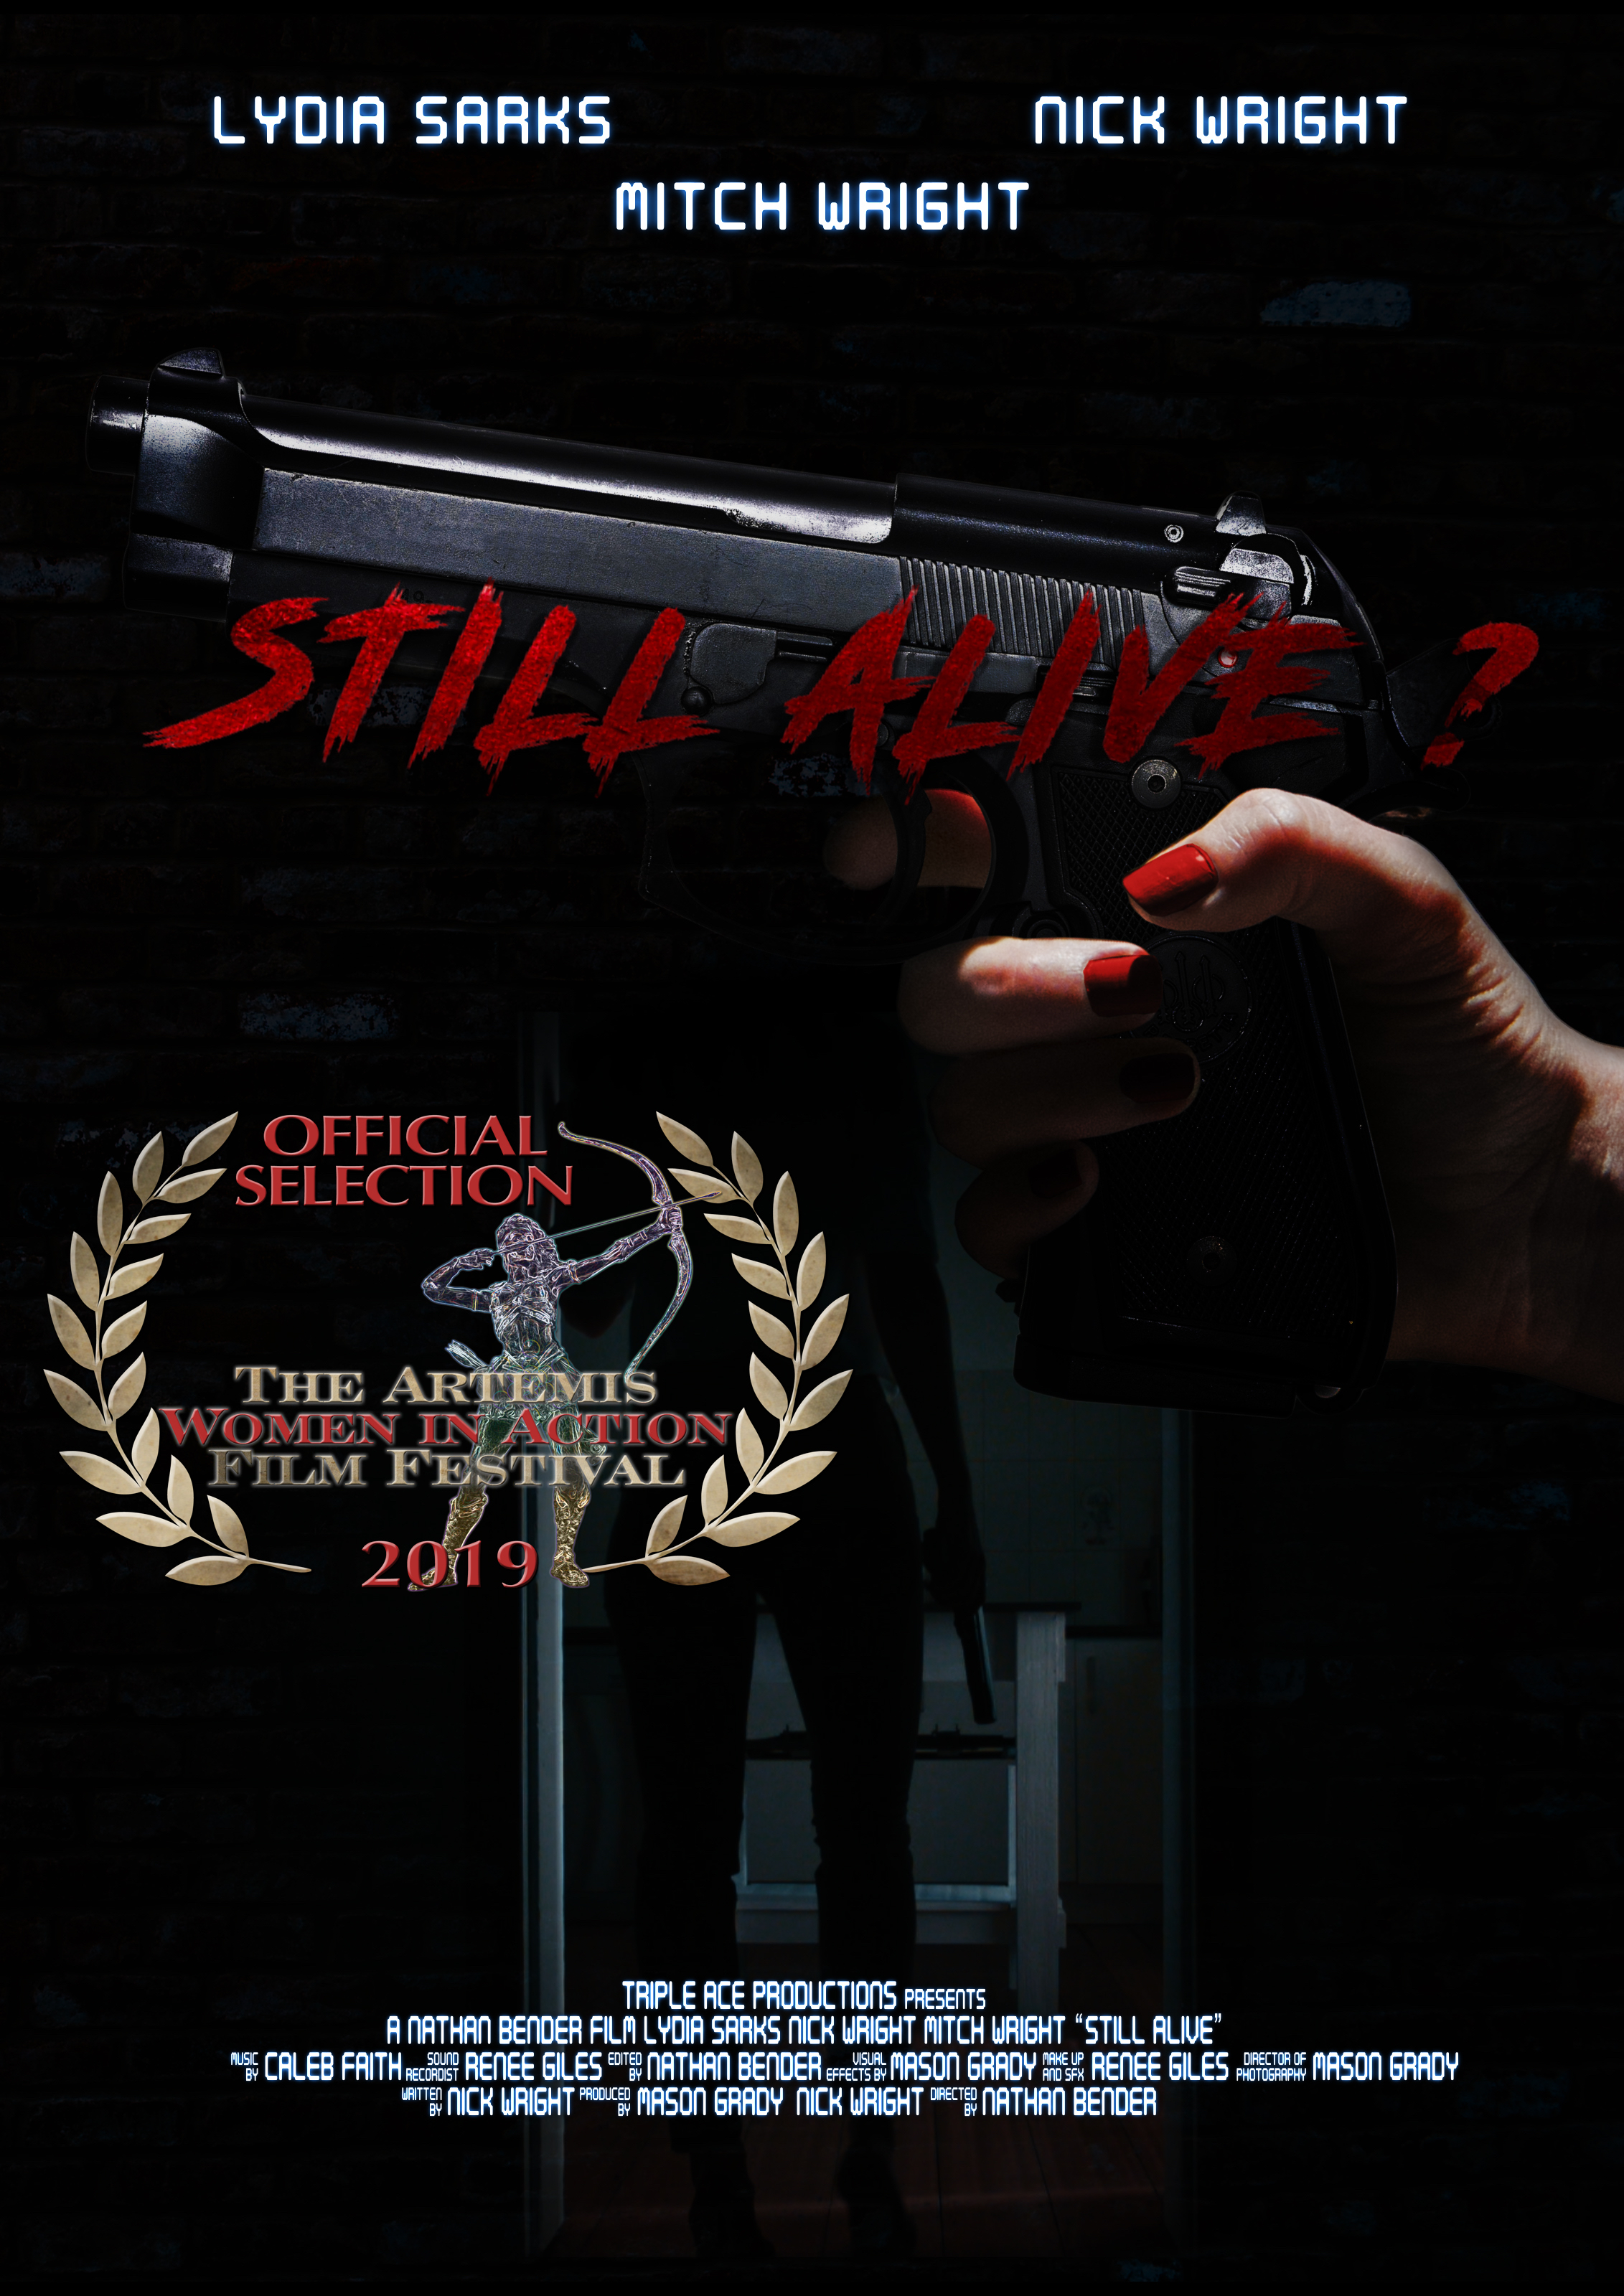 FILM | Action short film,  Still Alive?  starring Lydia is chosen as an offical selection of the Artemis Women in Action Film Festival.   The Artemis Women in Action Film Festival  | February 2019